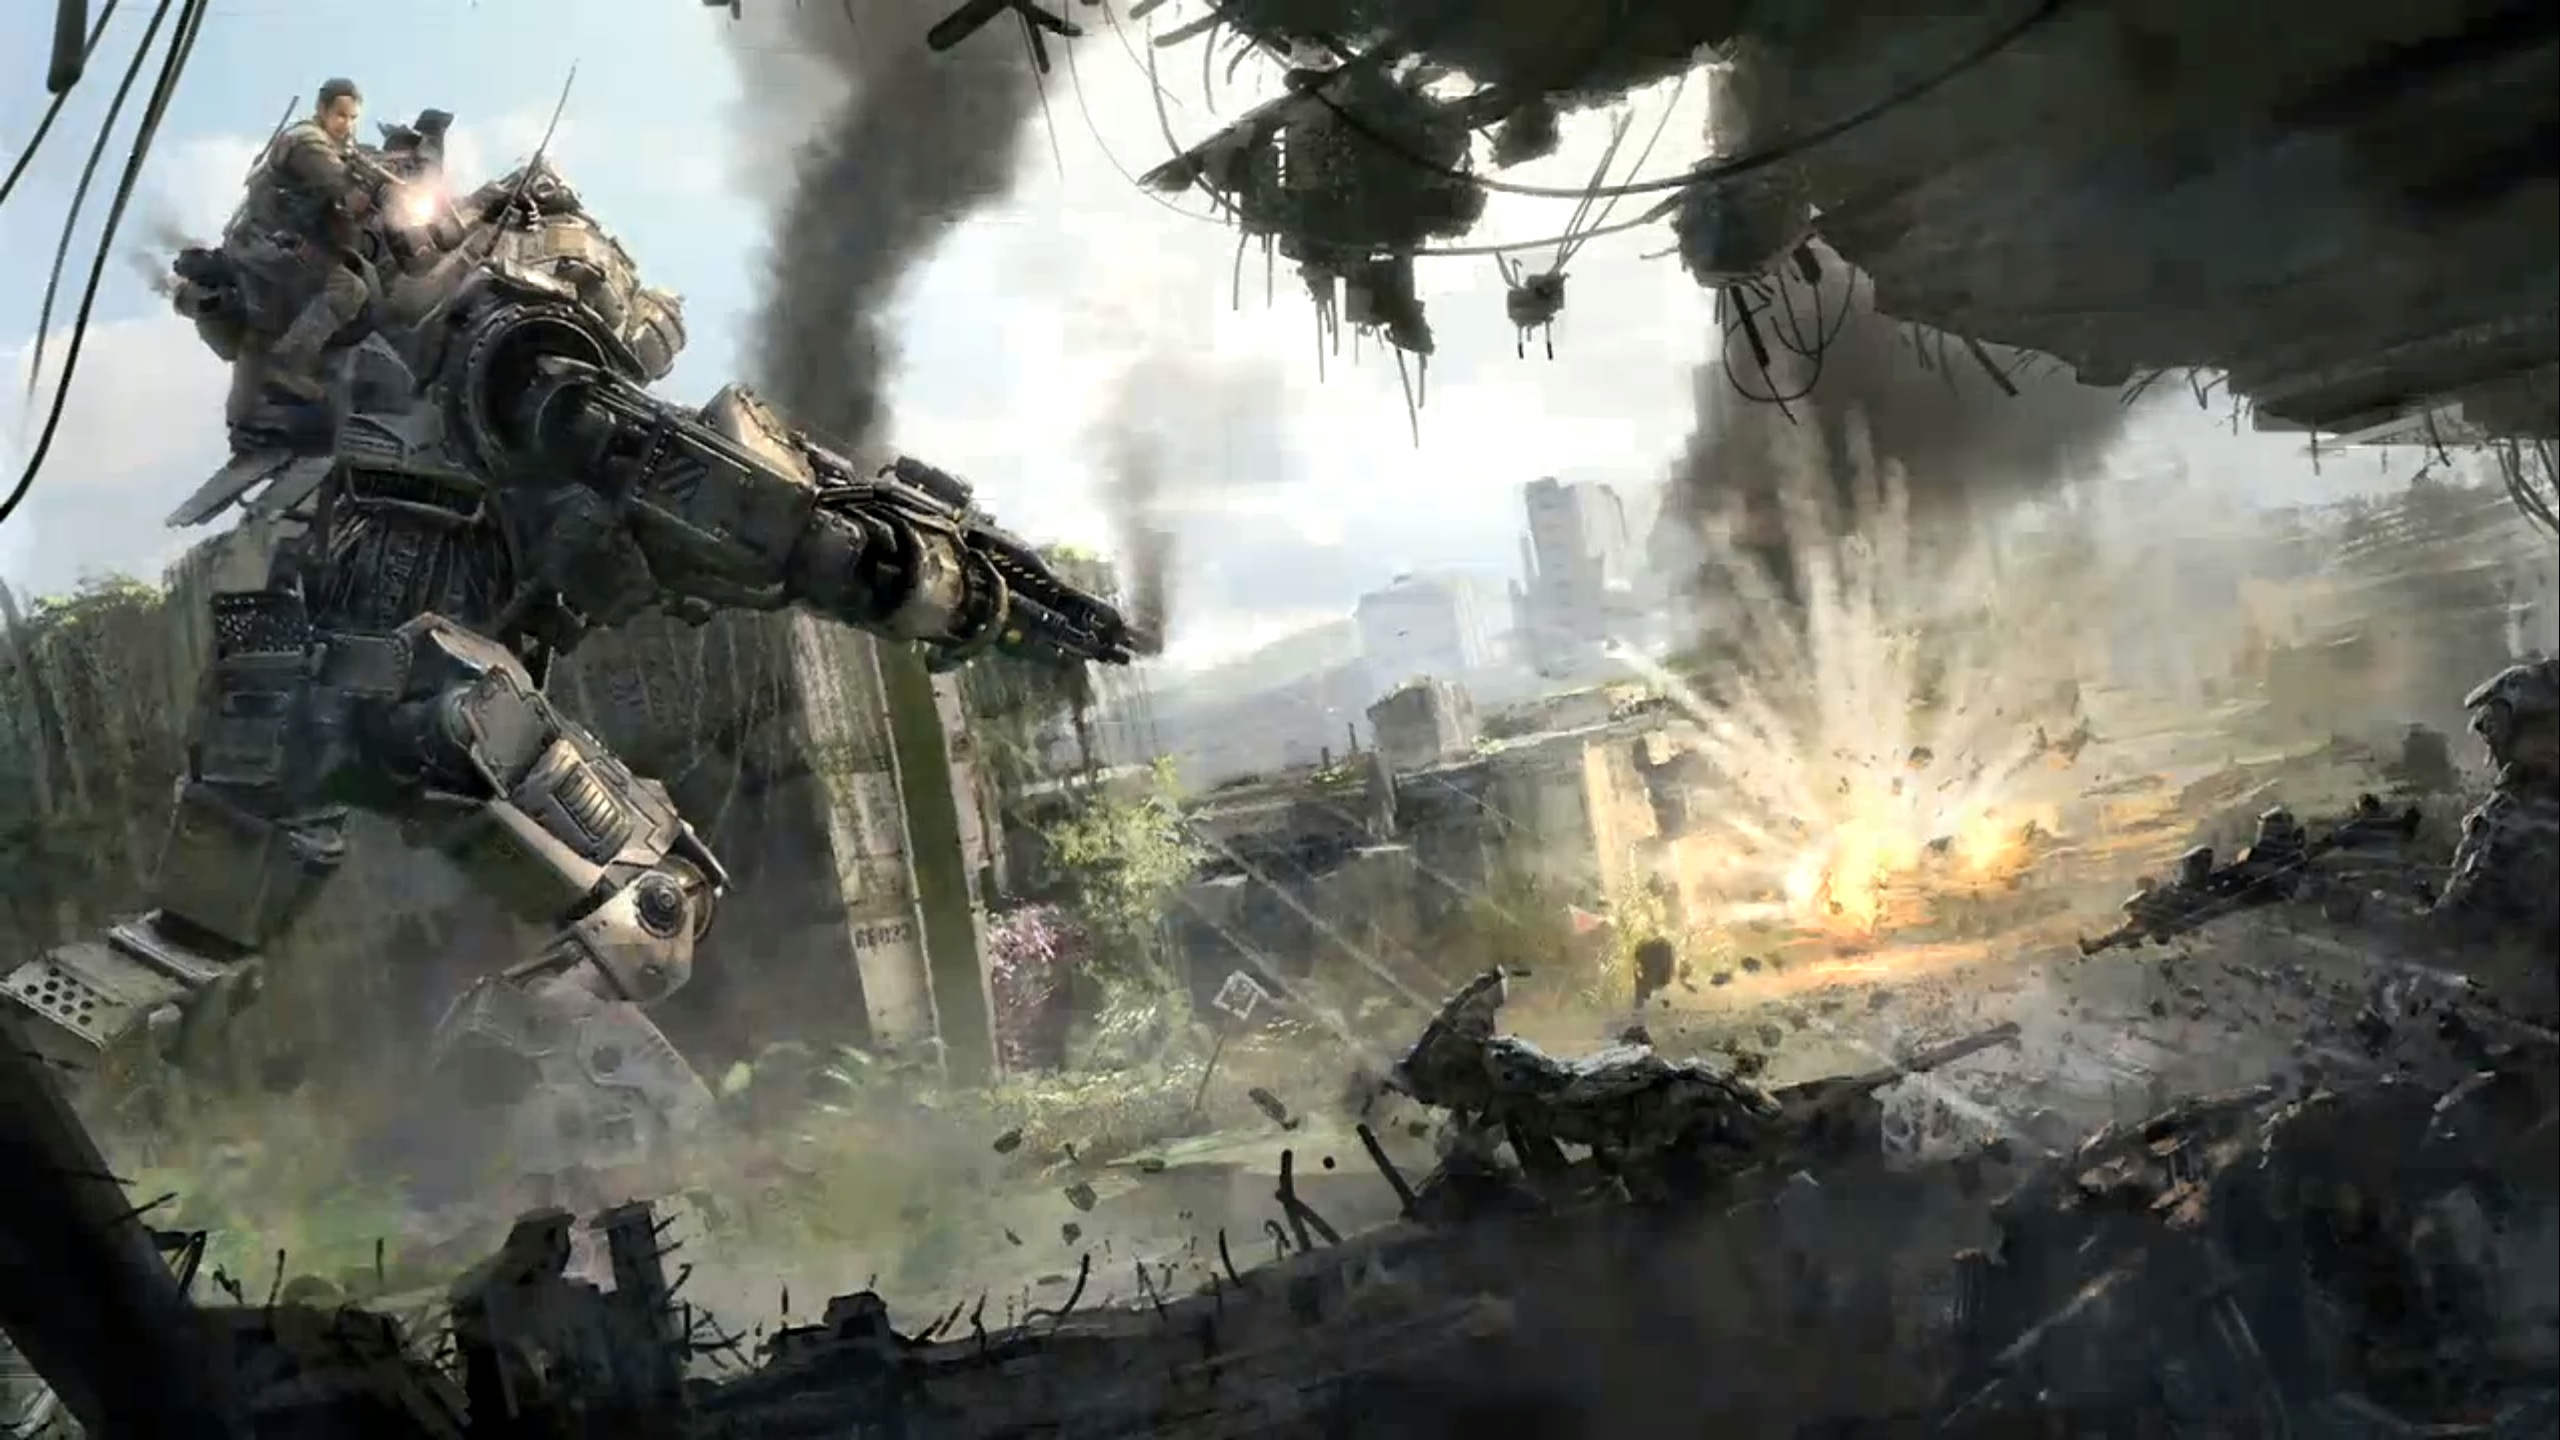 3d action game titanfall hd wallpapers download free for computer screens